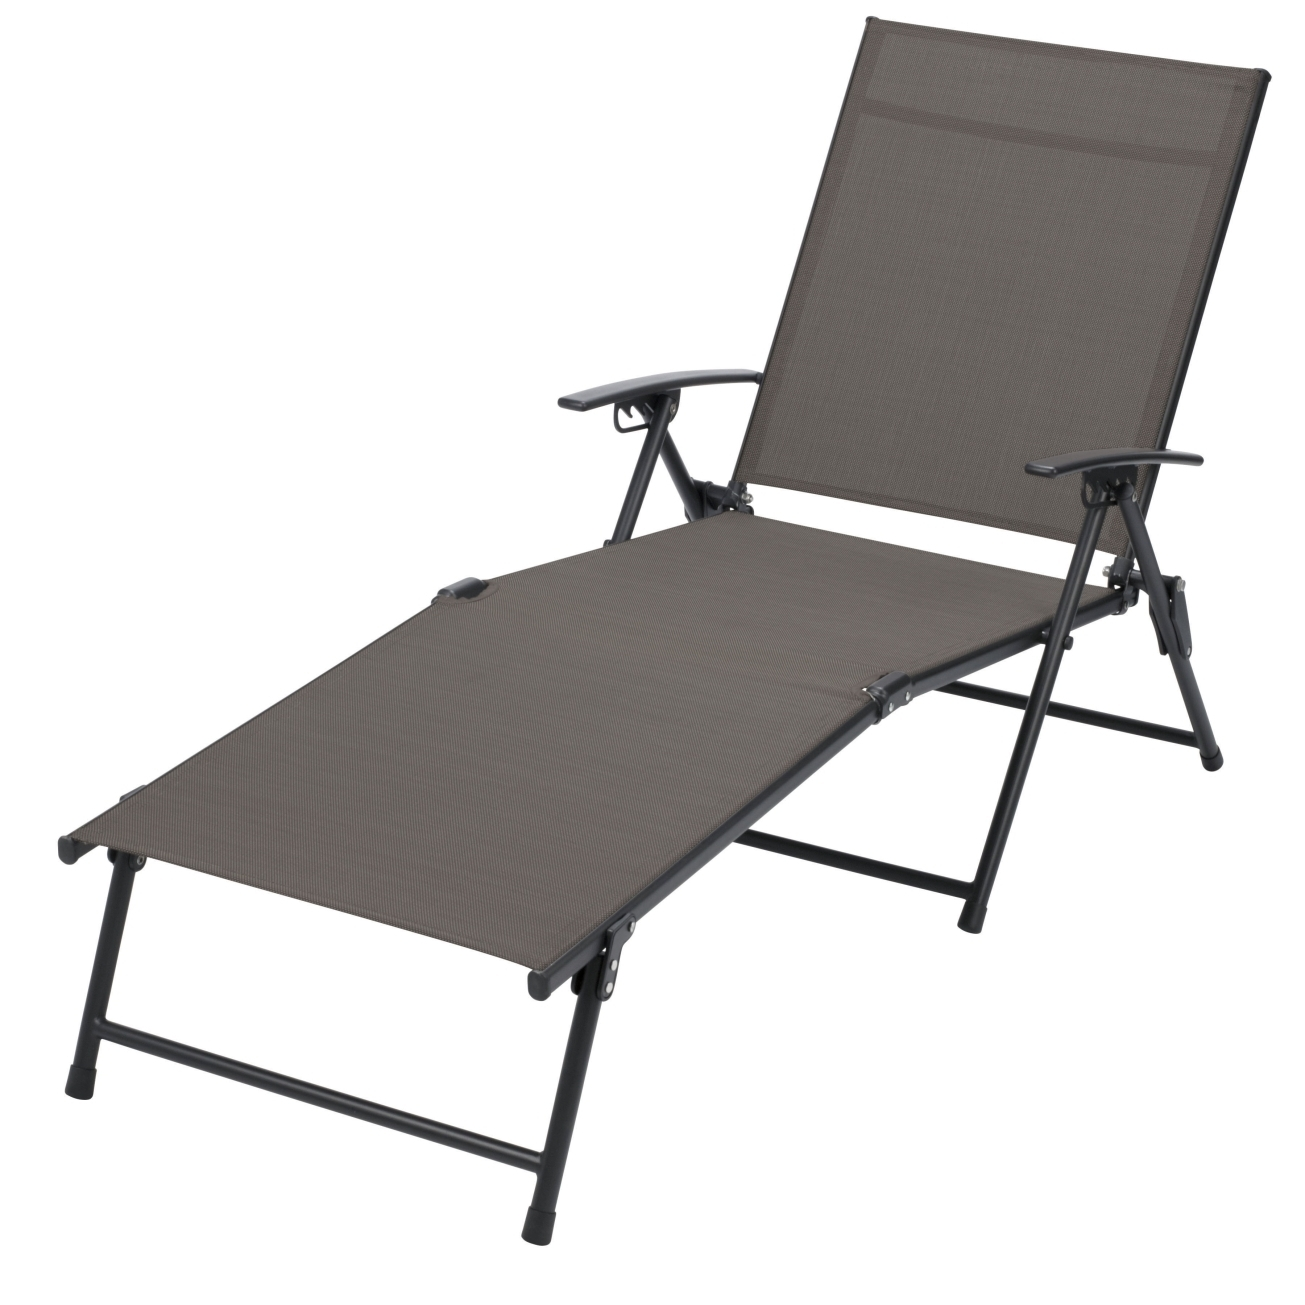 Tri Fold Lawn Chair 2019 Latest Folding Chaise Lounge Lawn Chairs